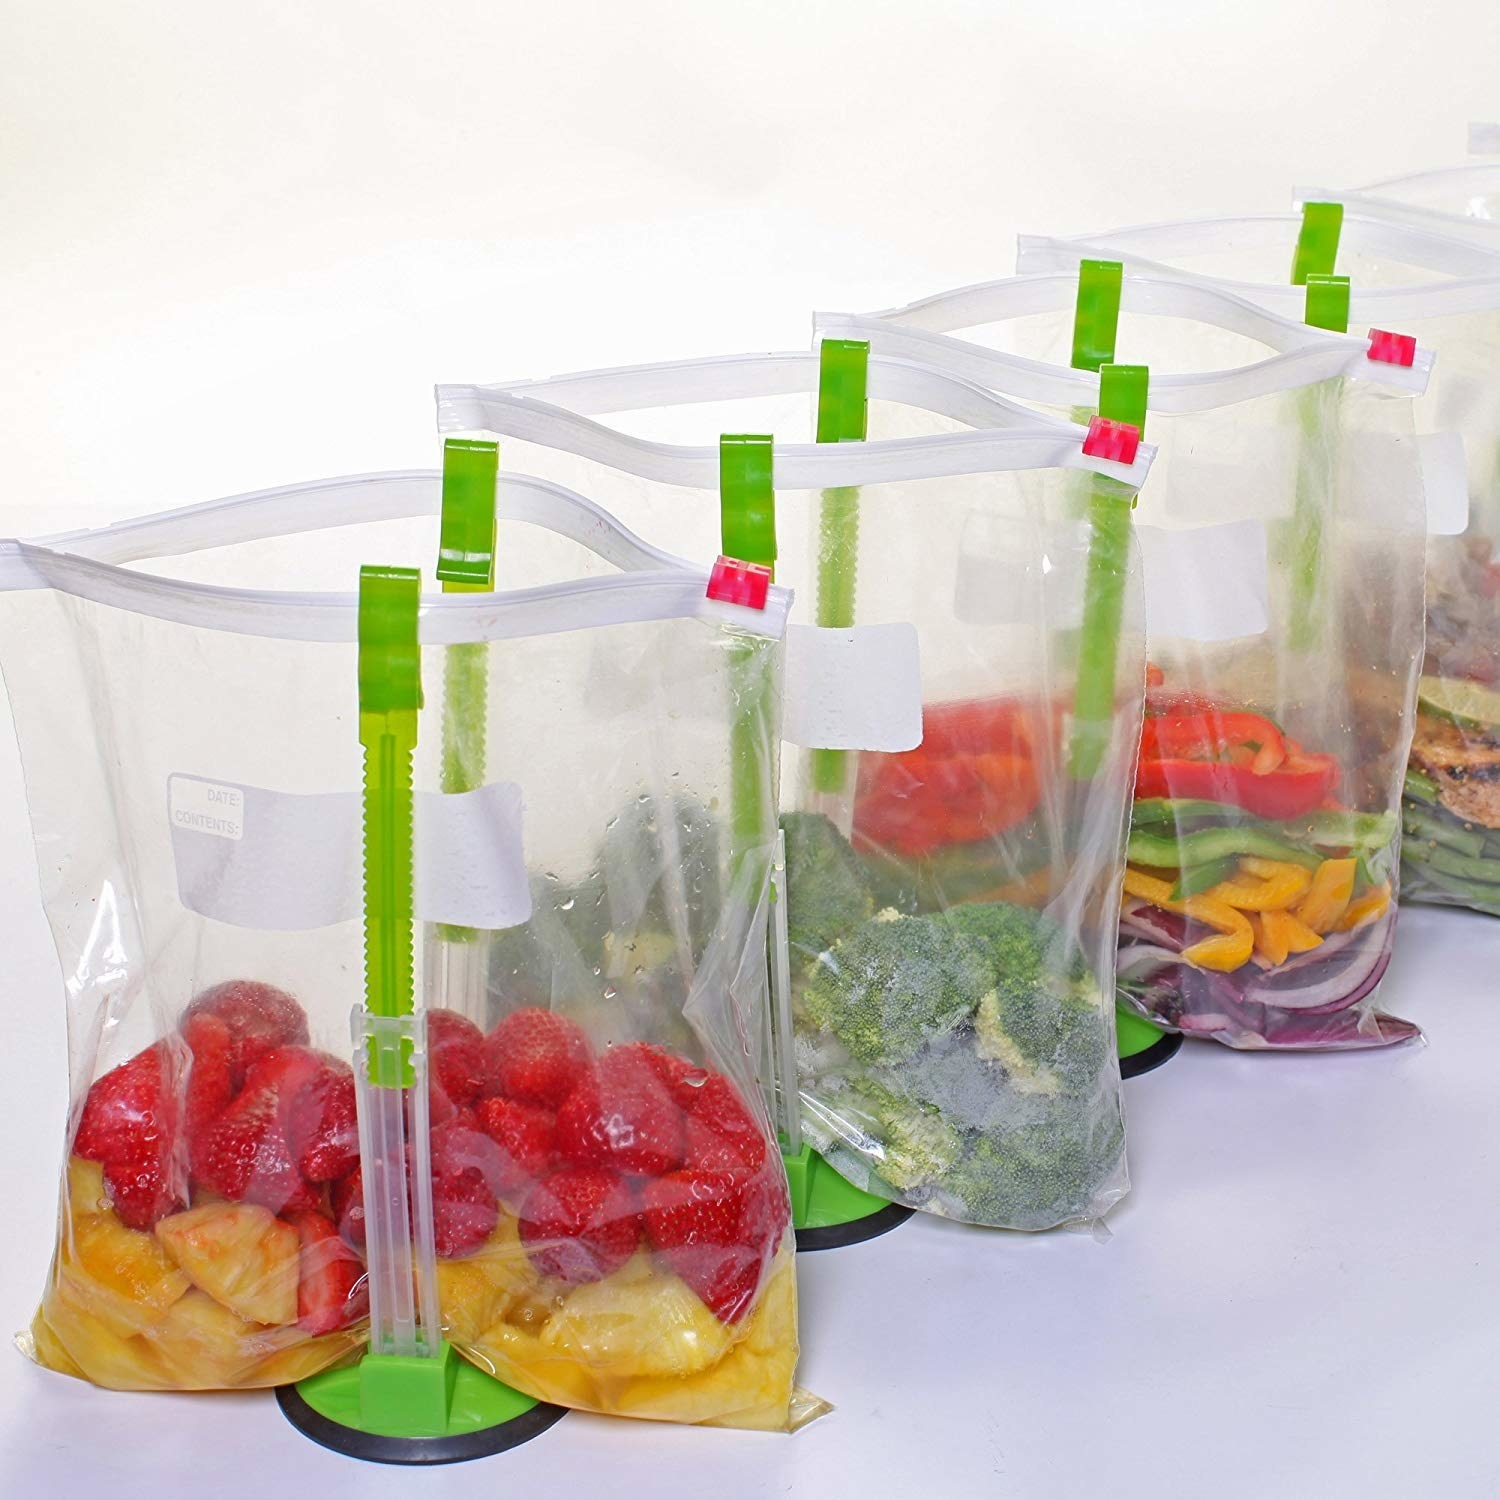 Three V-shaped plastic bag holder with clips at the tops and a wide base Three plastic bags full of fruits and veggies clipped on each side